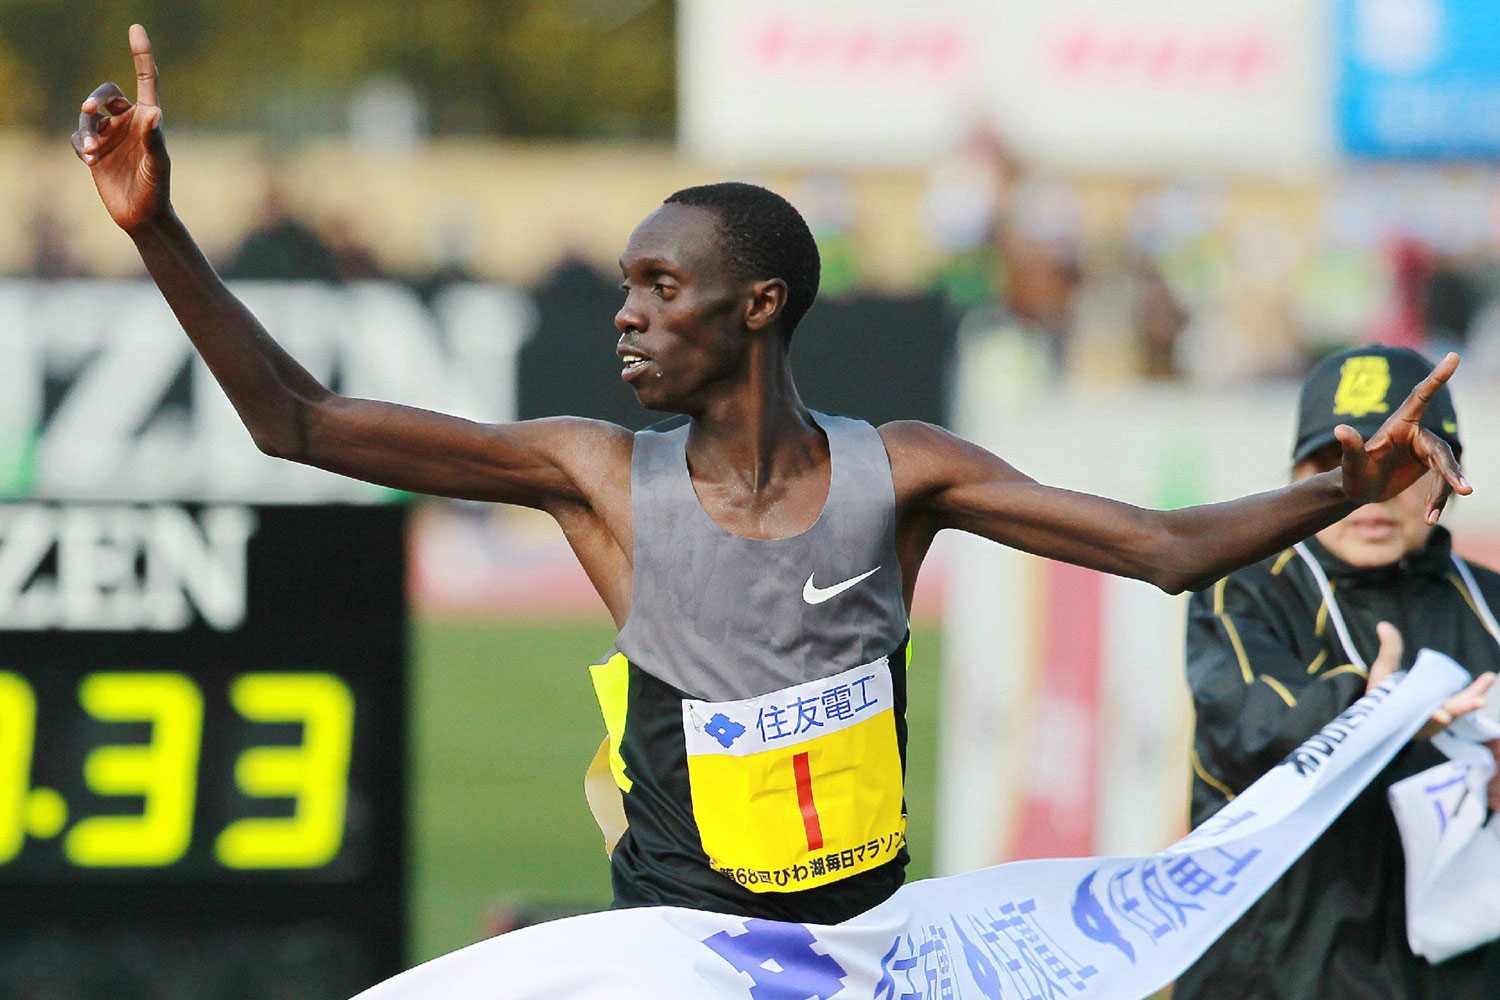 Kenya's Vincent Kipruto gestures as he crosses the finish line of the Lake Biwa Marathon in Otsu, Shiga in March 2013.